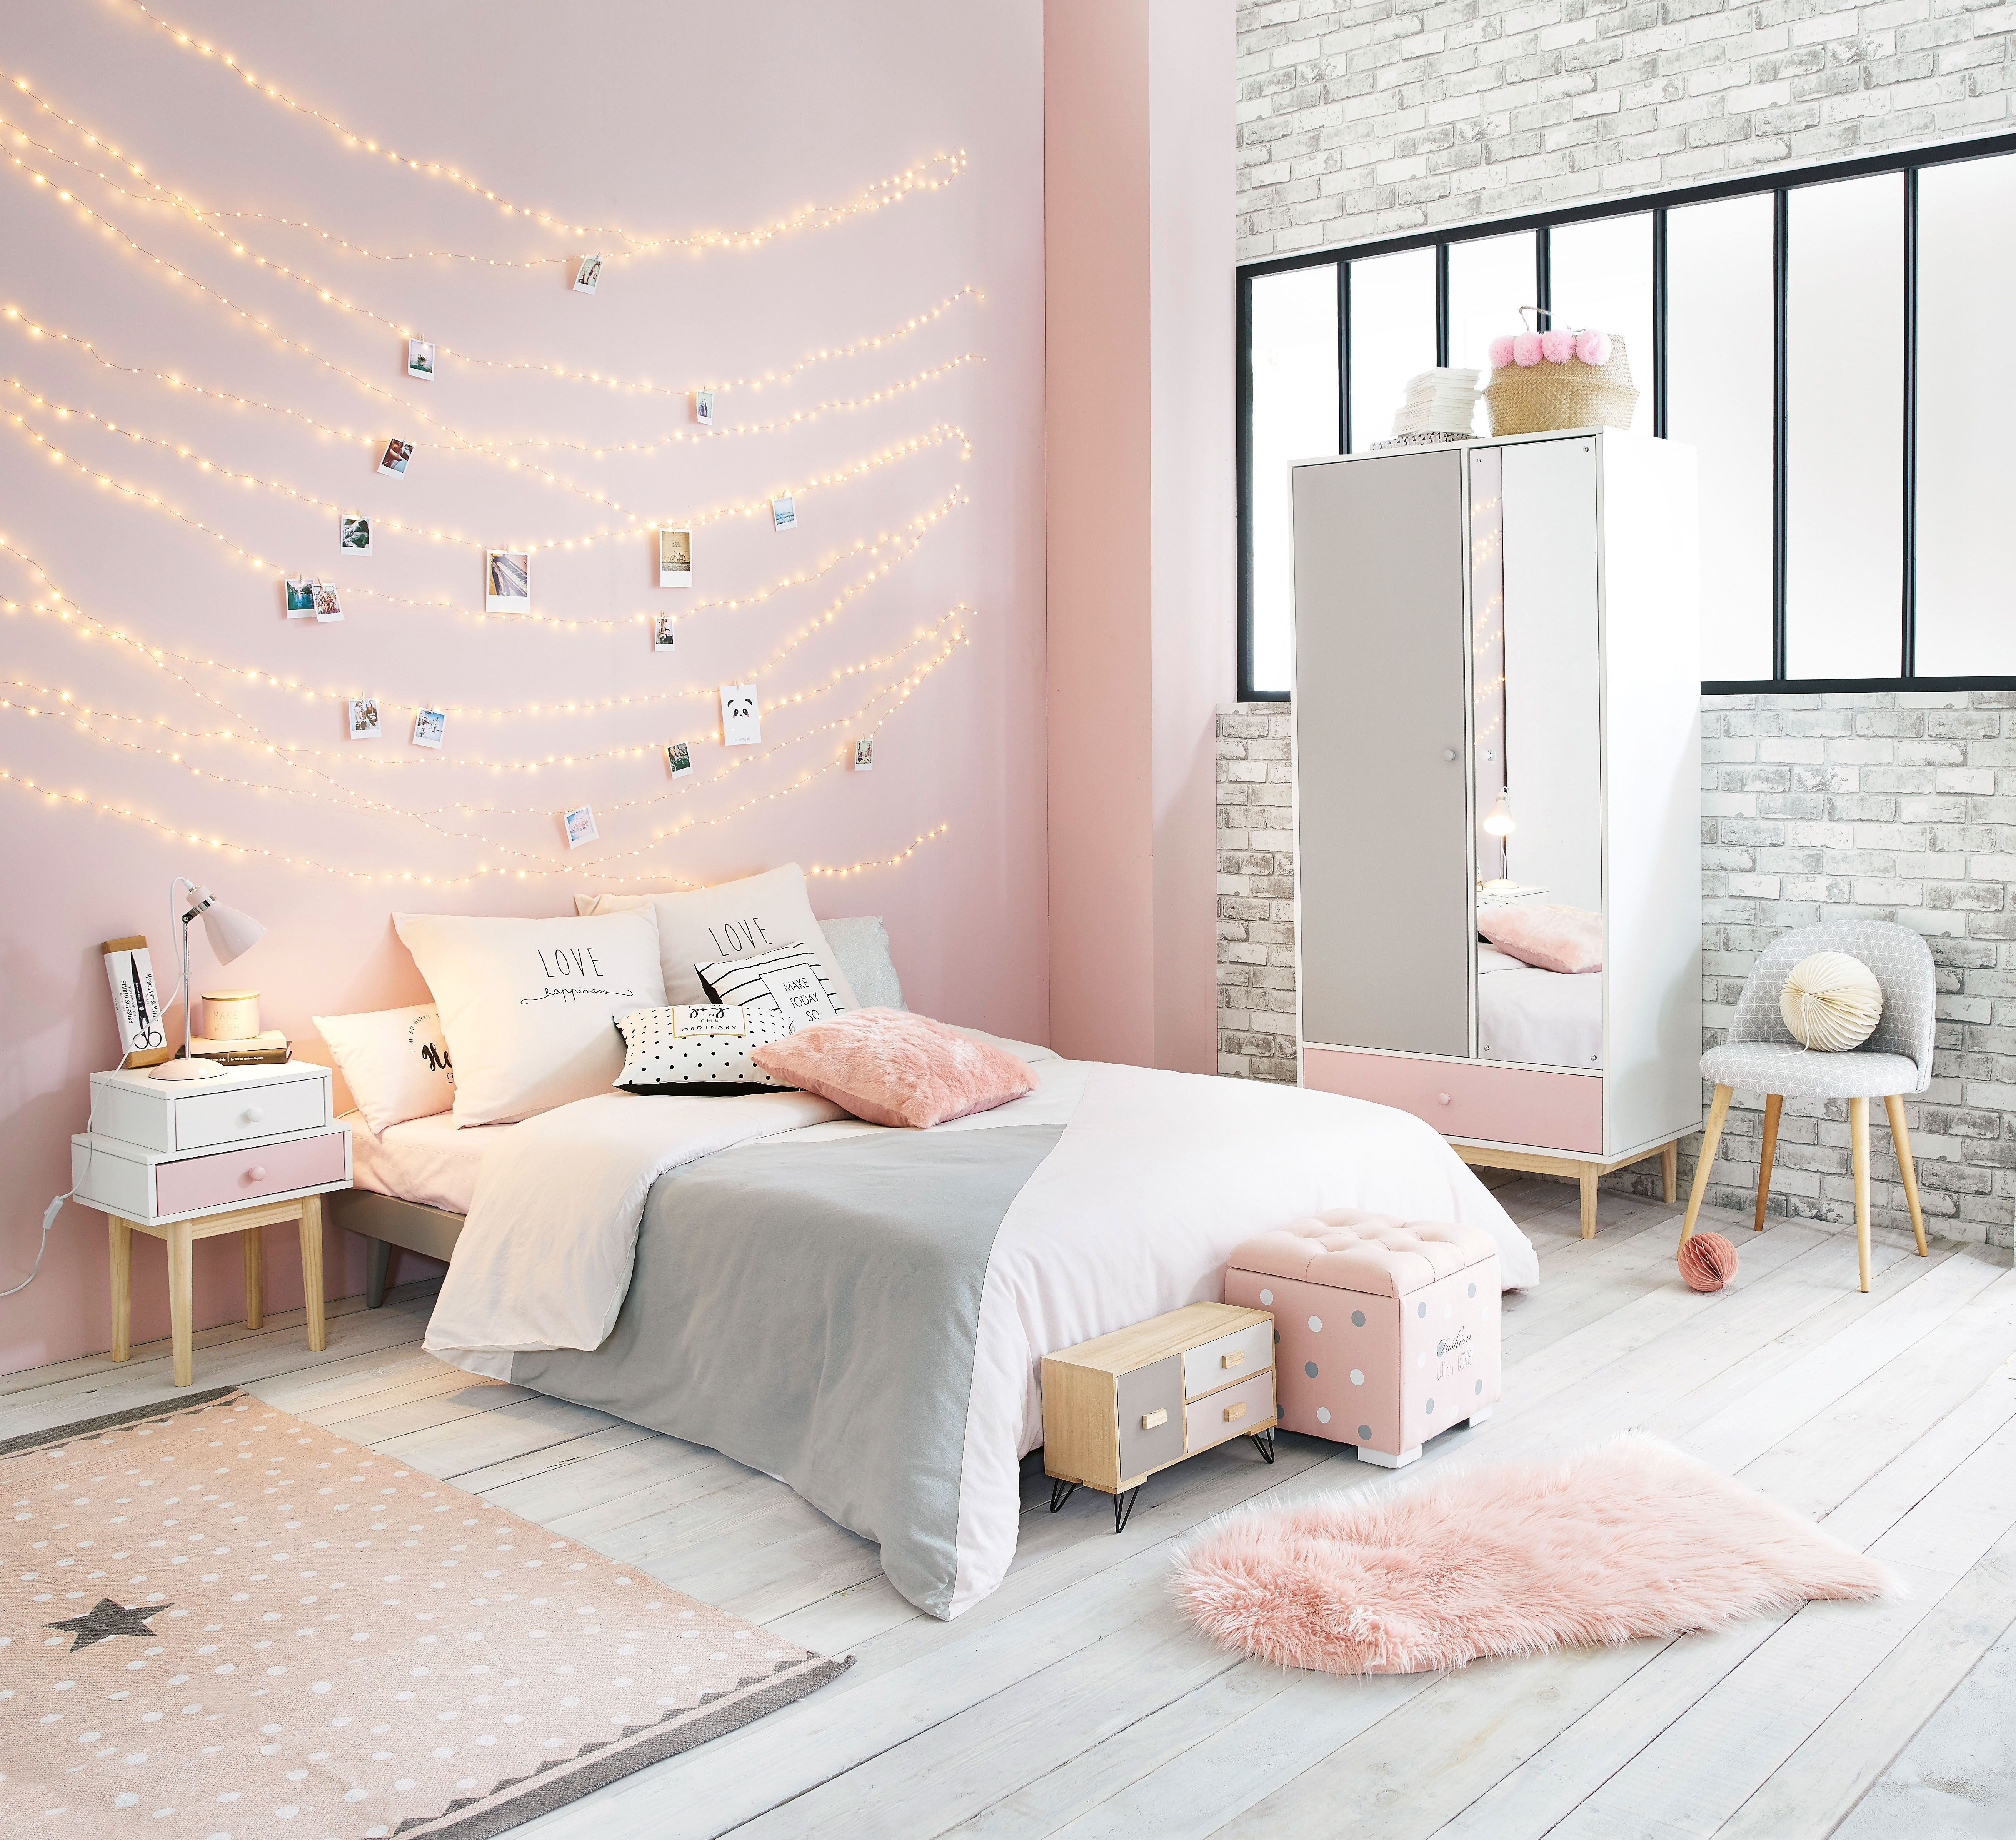 pin on home ideas on grey and light pink bedroom decorating ideas id=16595